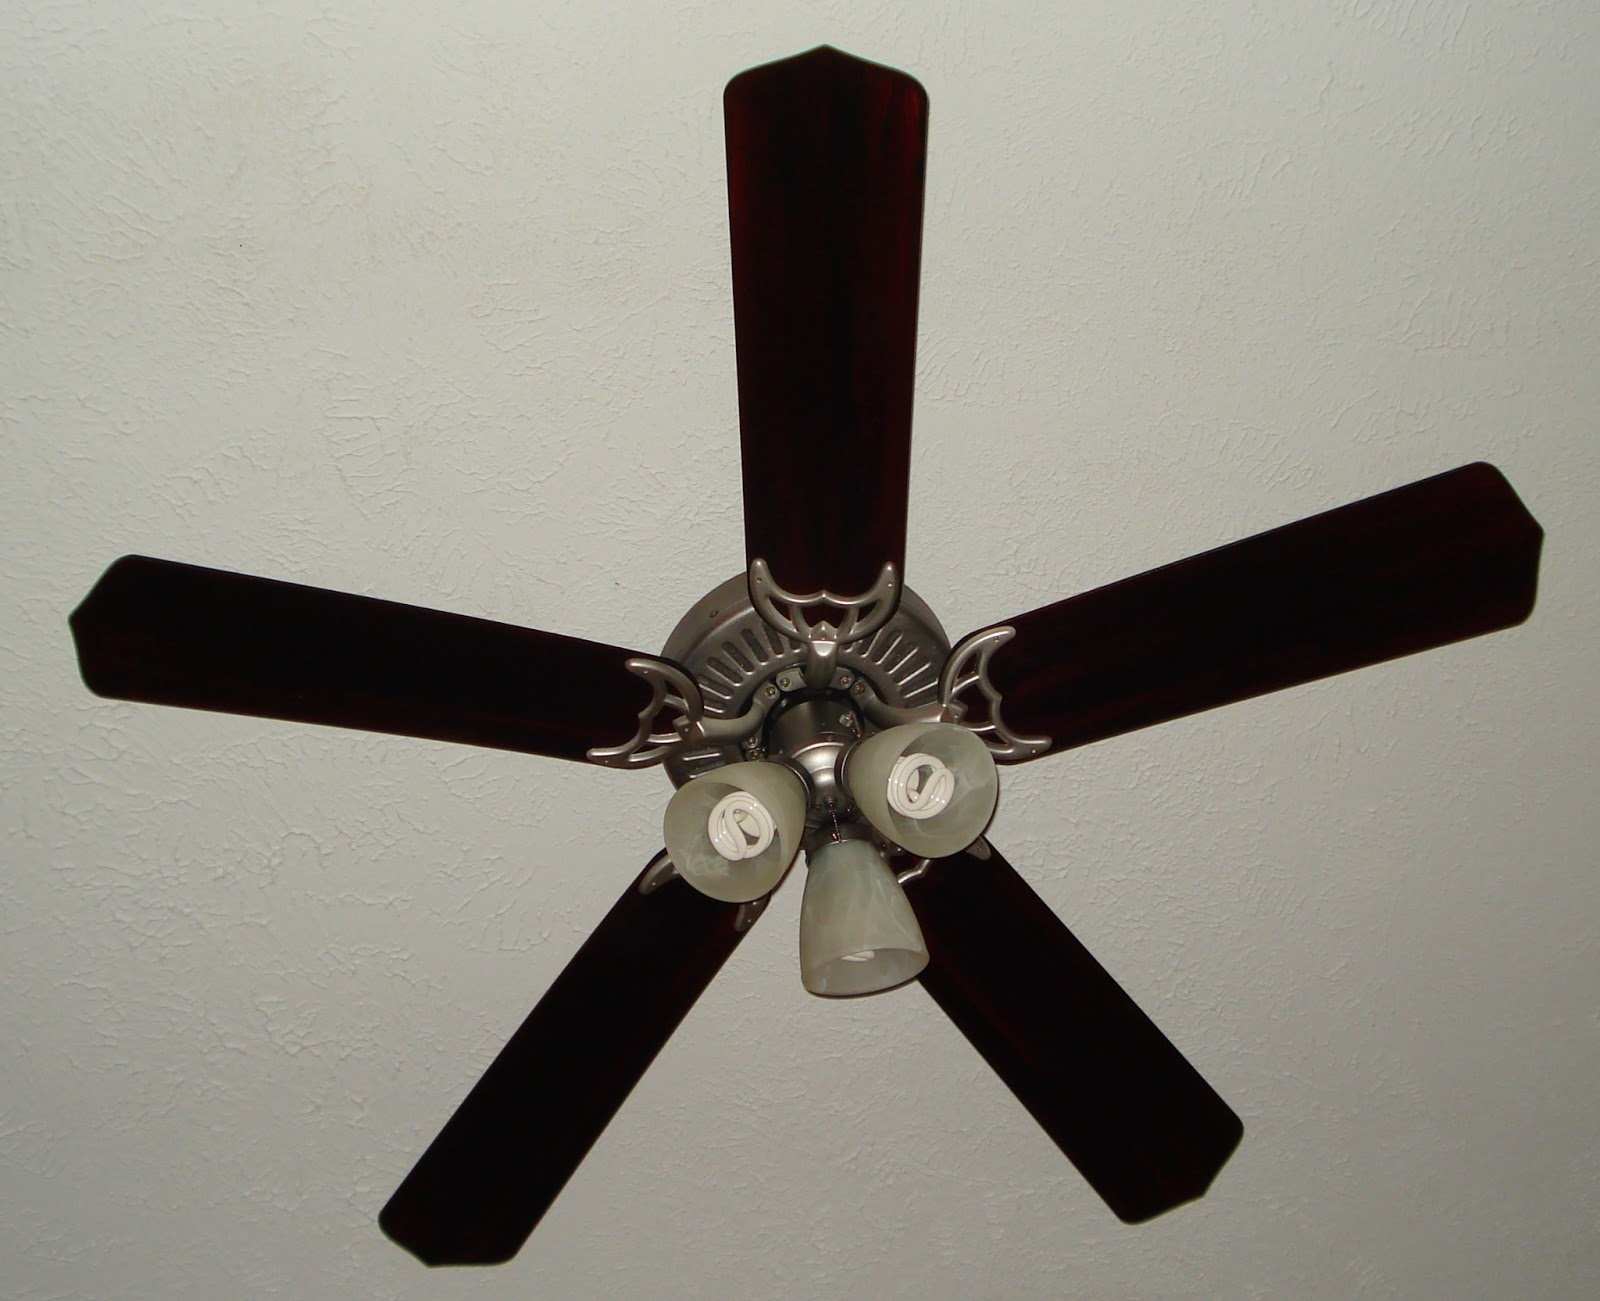 Frugal Newlyweds: How to Paint Your Ceiling Fan